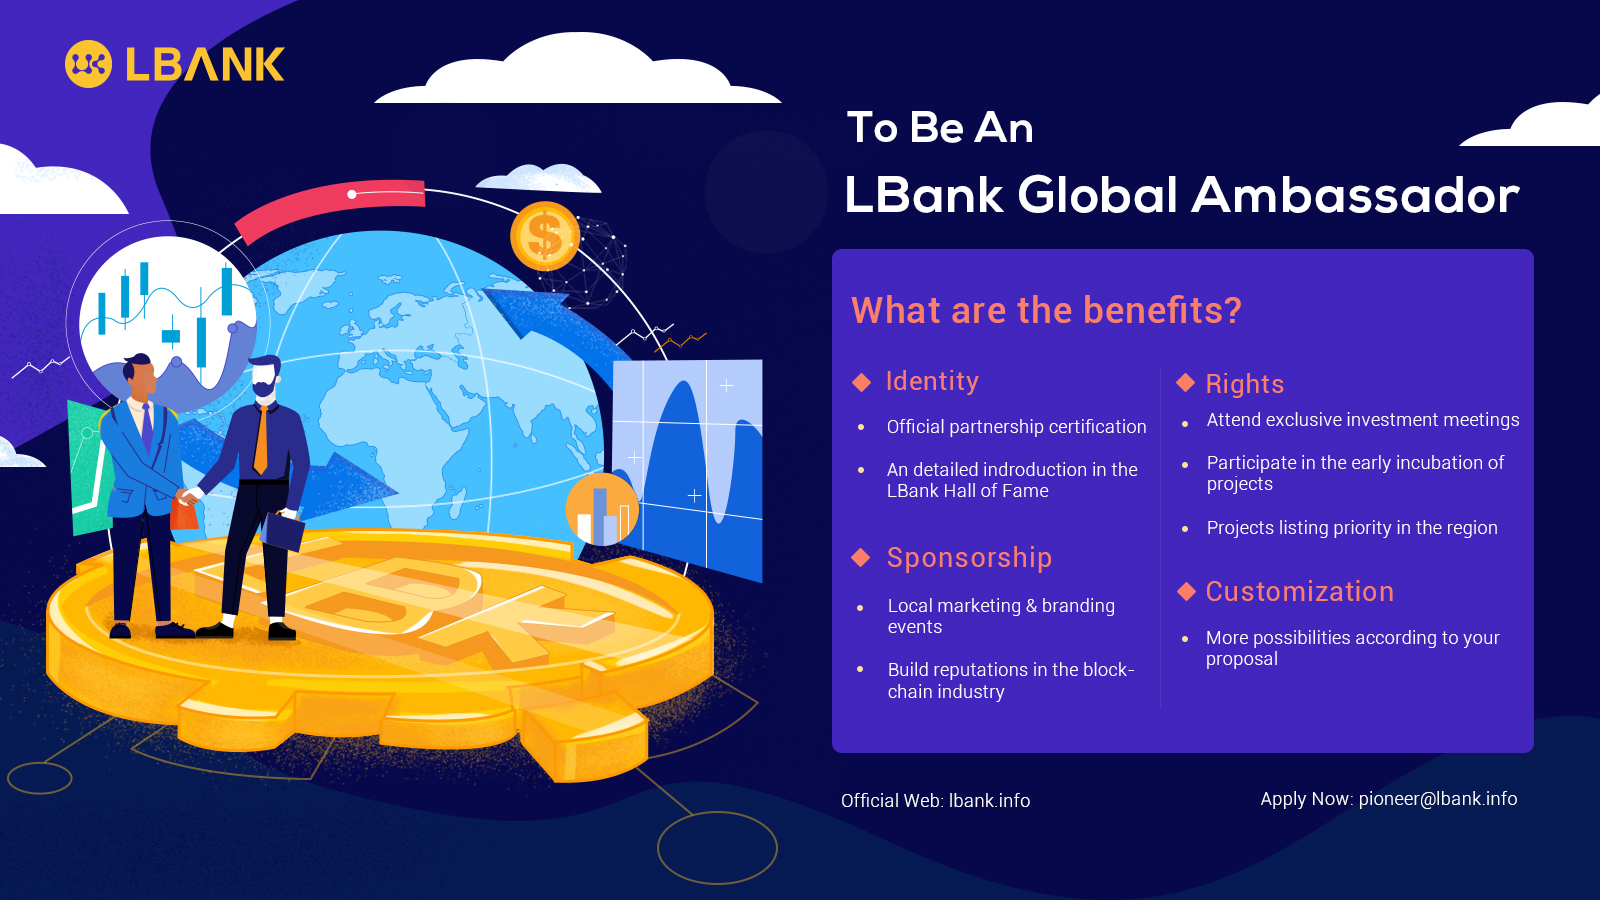 LBank Is Recruiting Global Ambassadors To Share In Its Growth